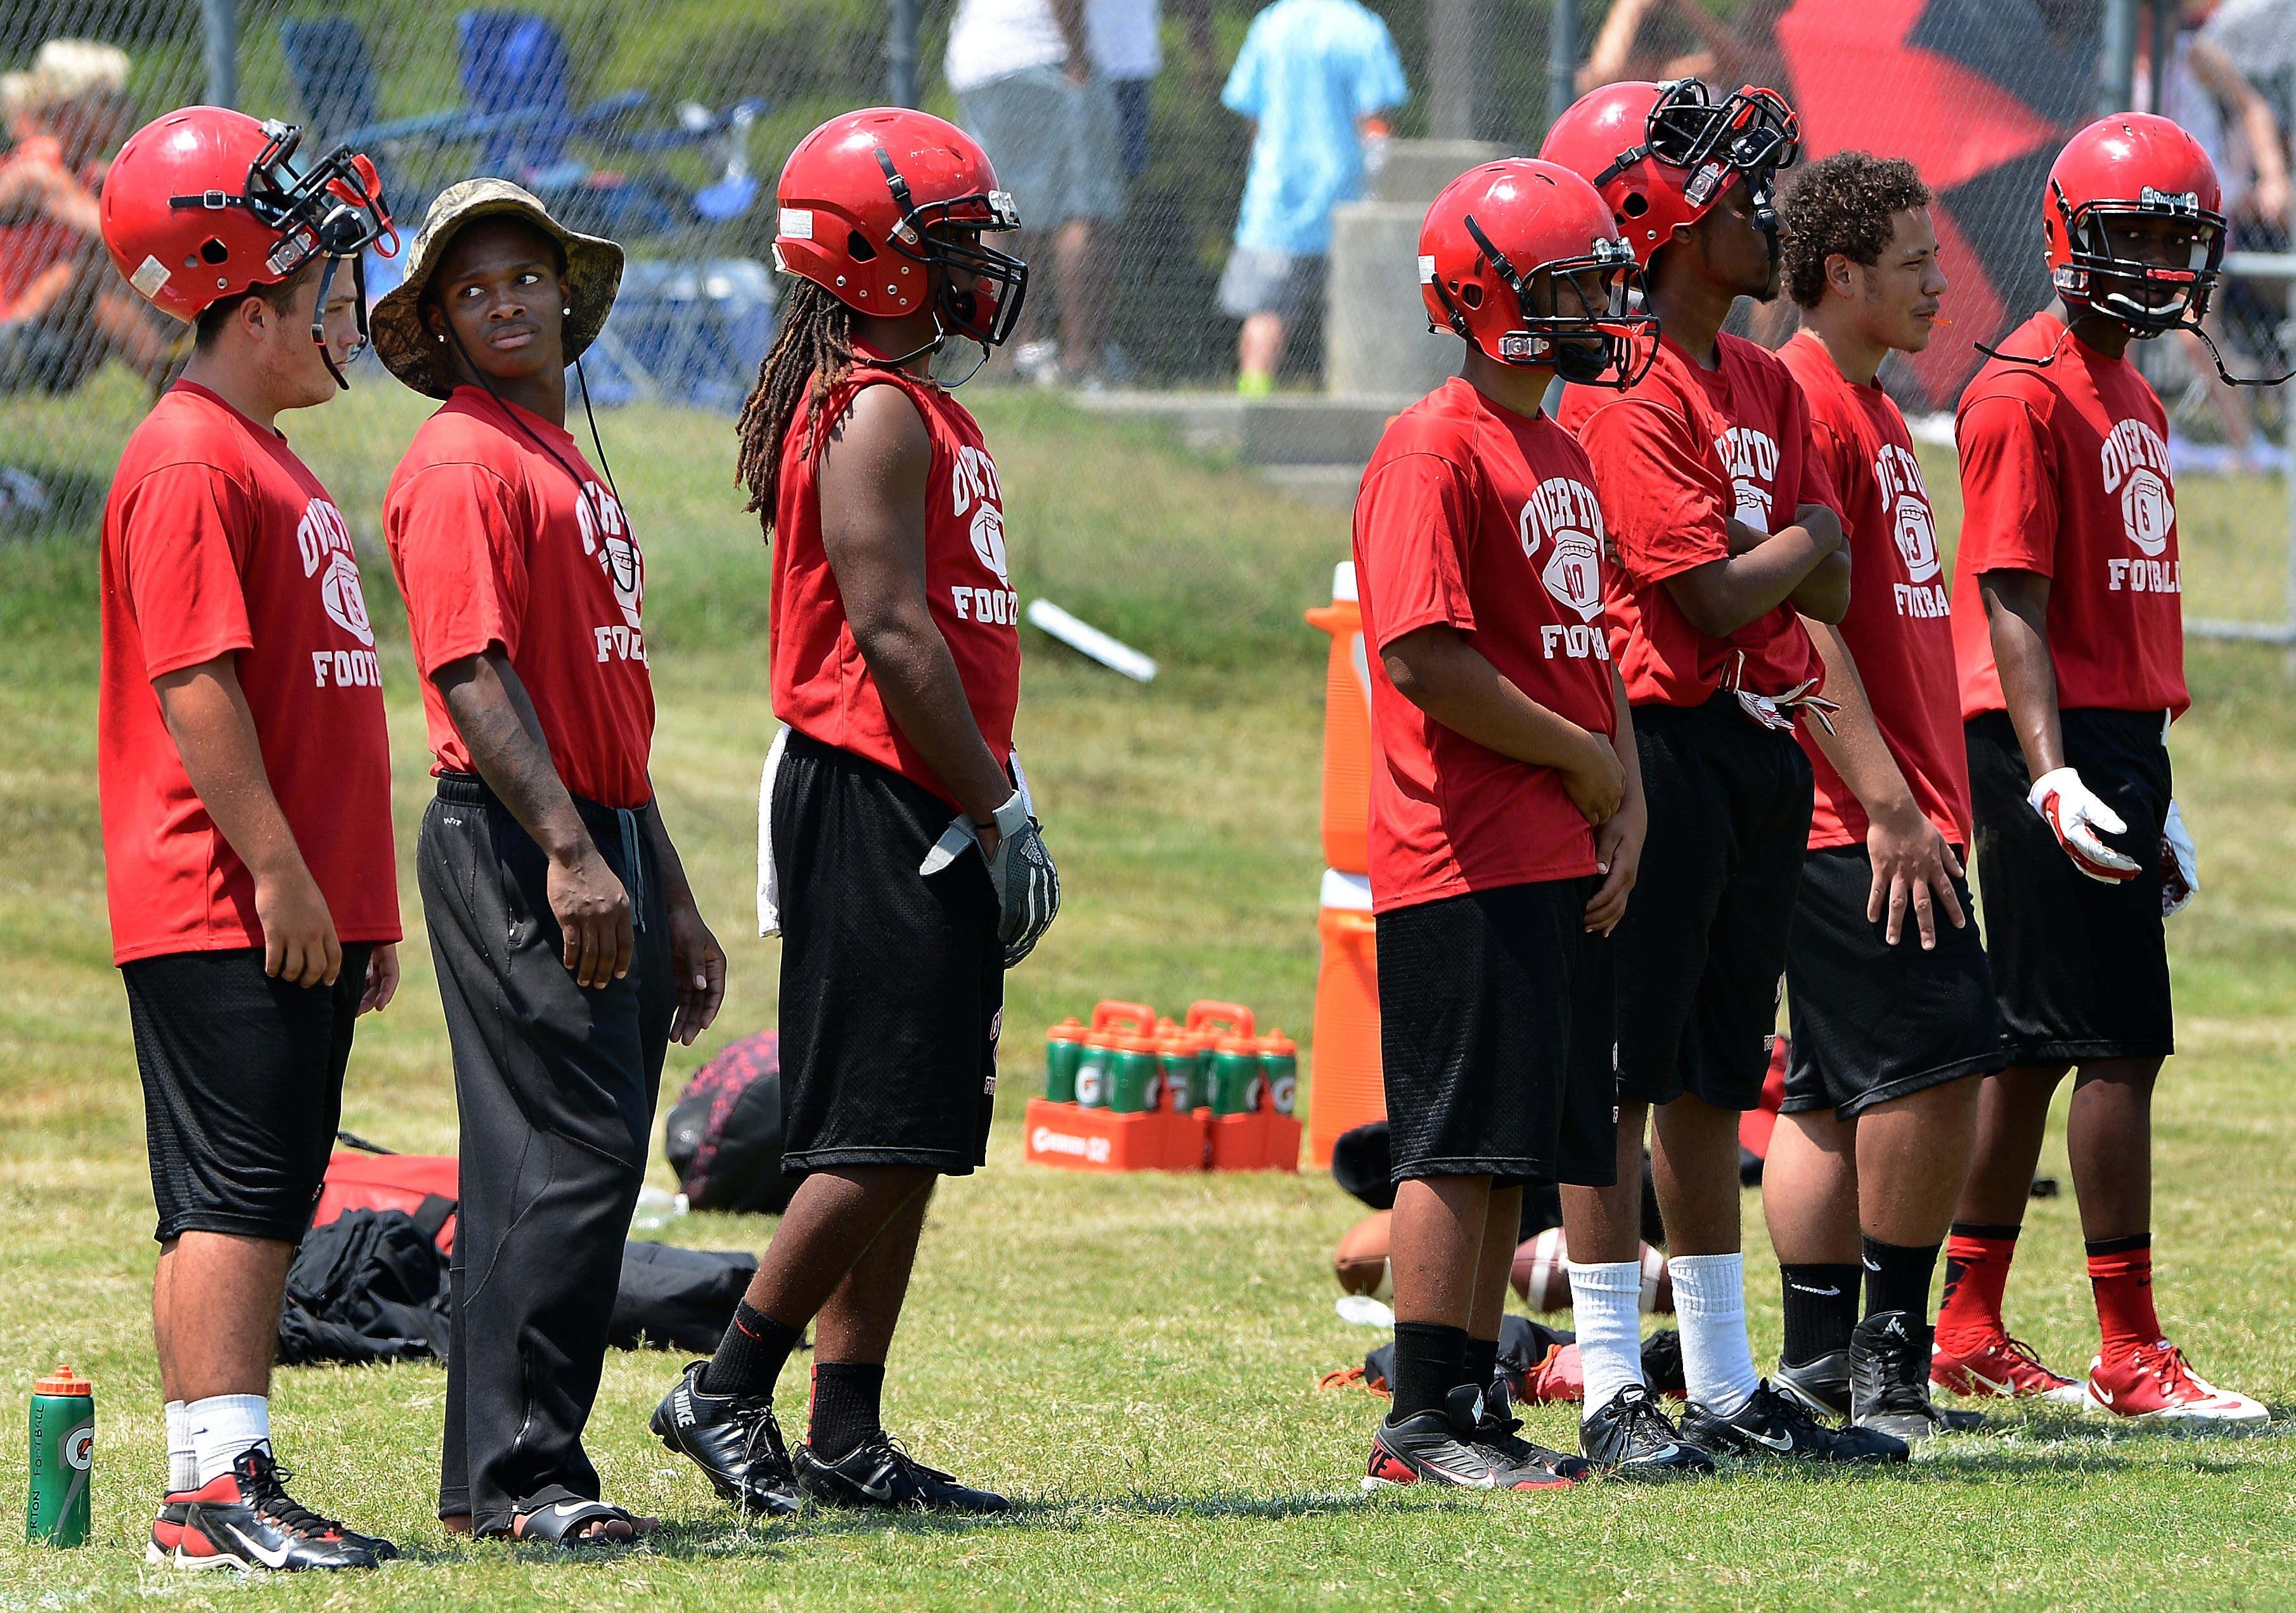 Overton High school running back Nick Fuqua, second from left, watches from the sidelines during the 7-on-7 passing league tournament at Ravenwood High School Saturday.